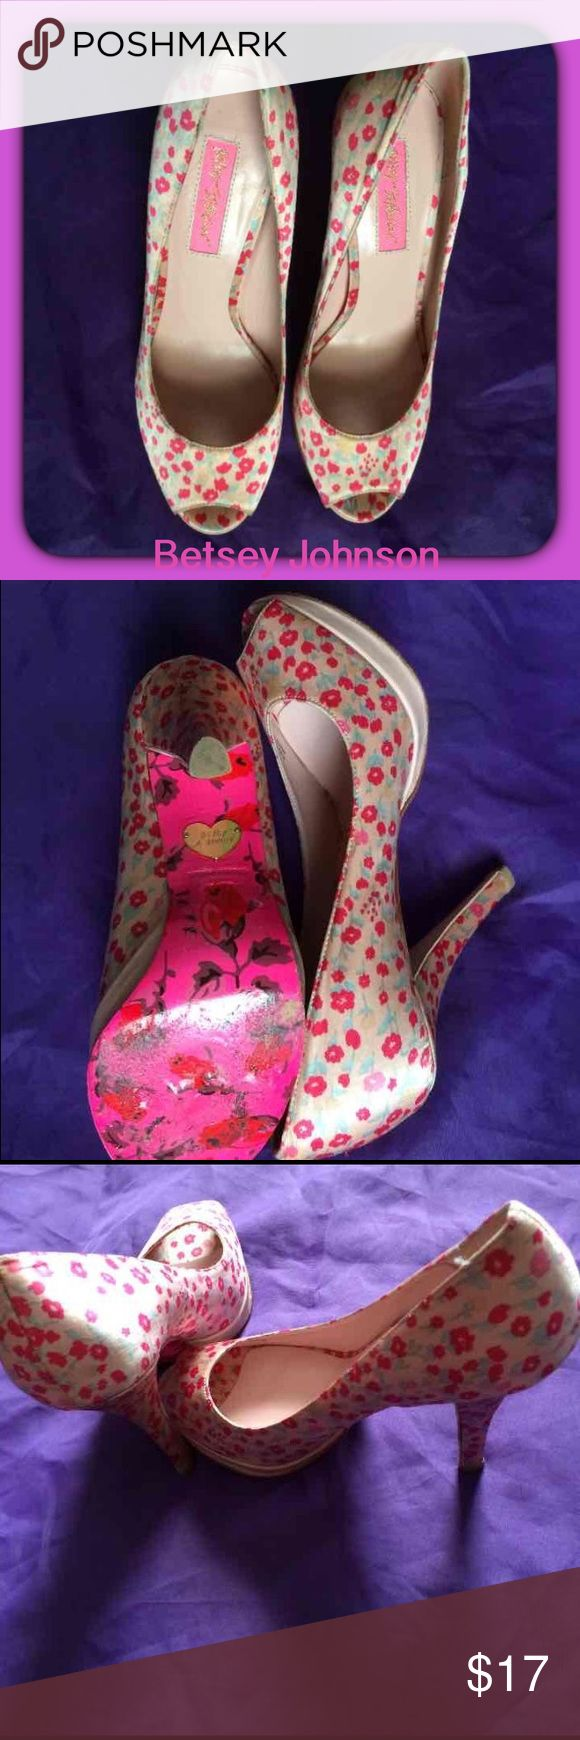 Betsey Johnson Peep Toe 4 inch Heels Re-posh these beautiful Flower Betsey Johnson Peep toe pumps. I love these shoes! I never wore them Because they are too small. I wear a 7 and these fit exactly like 6 1/2 Betsey Johnson Shoes Heels